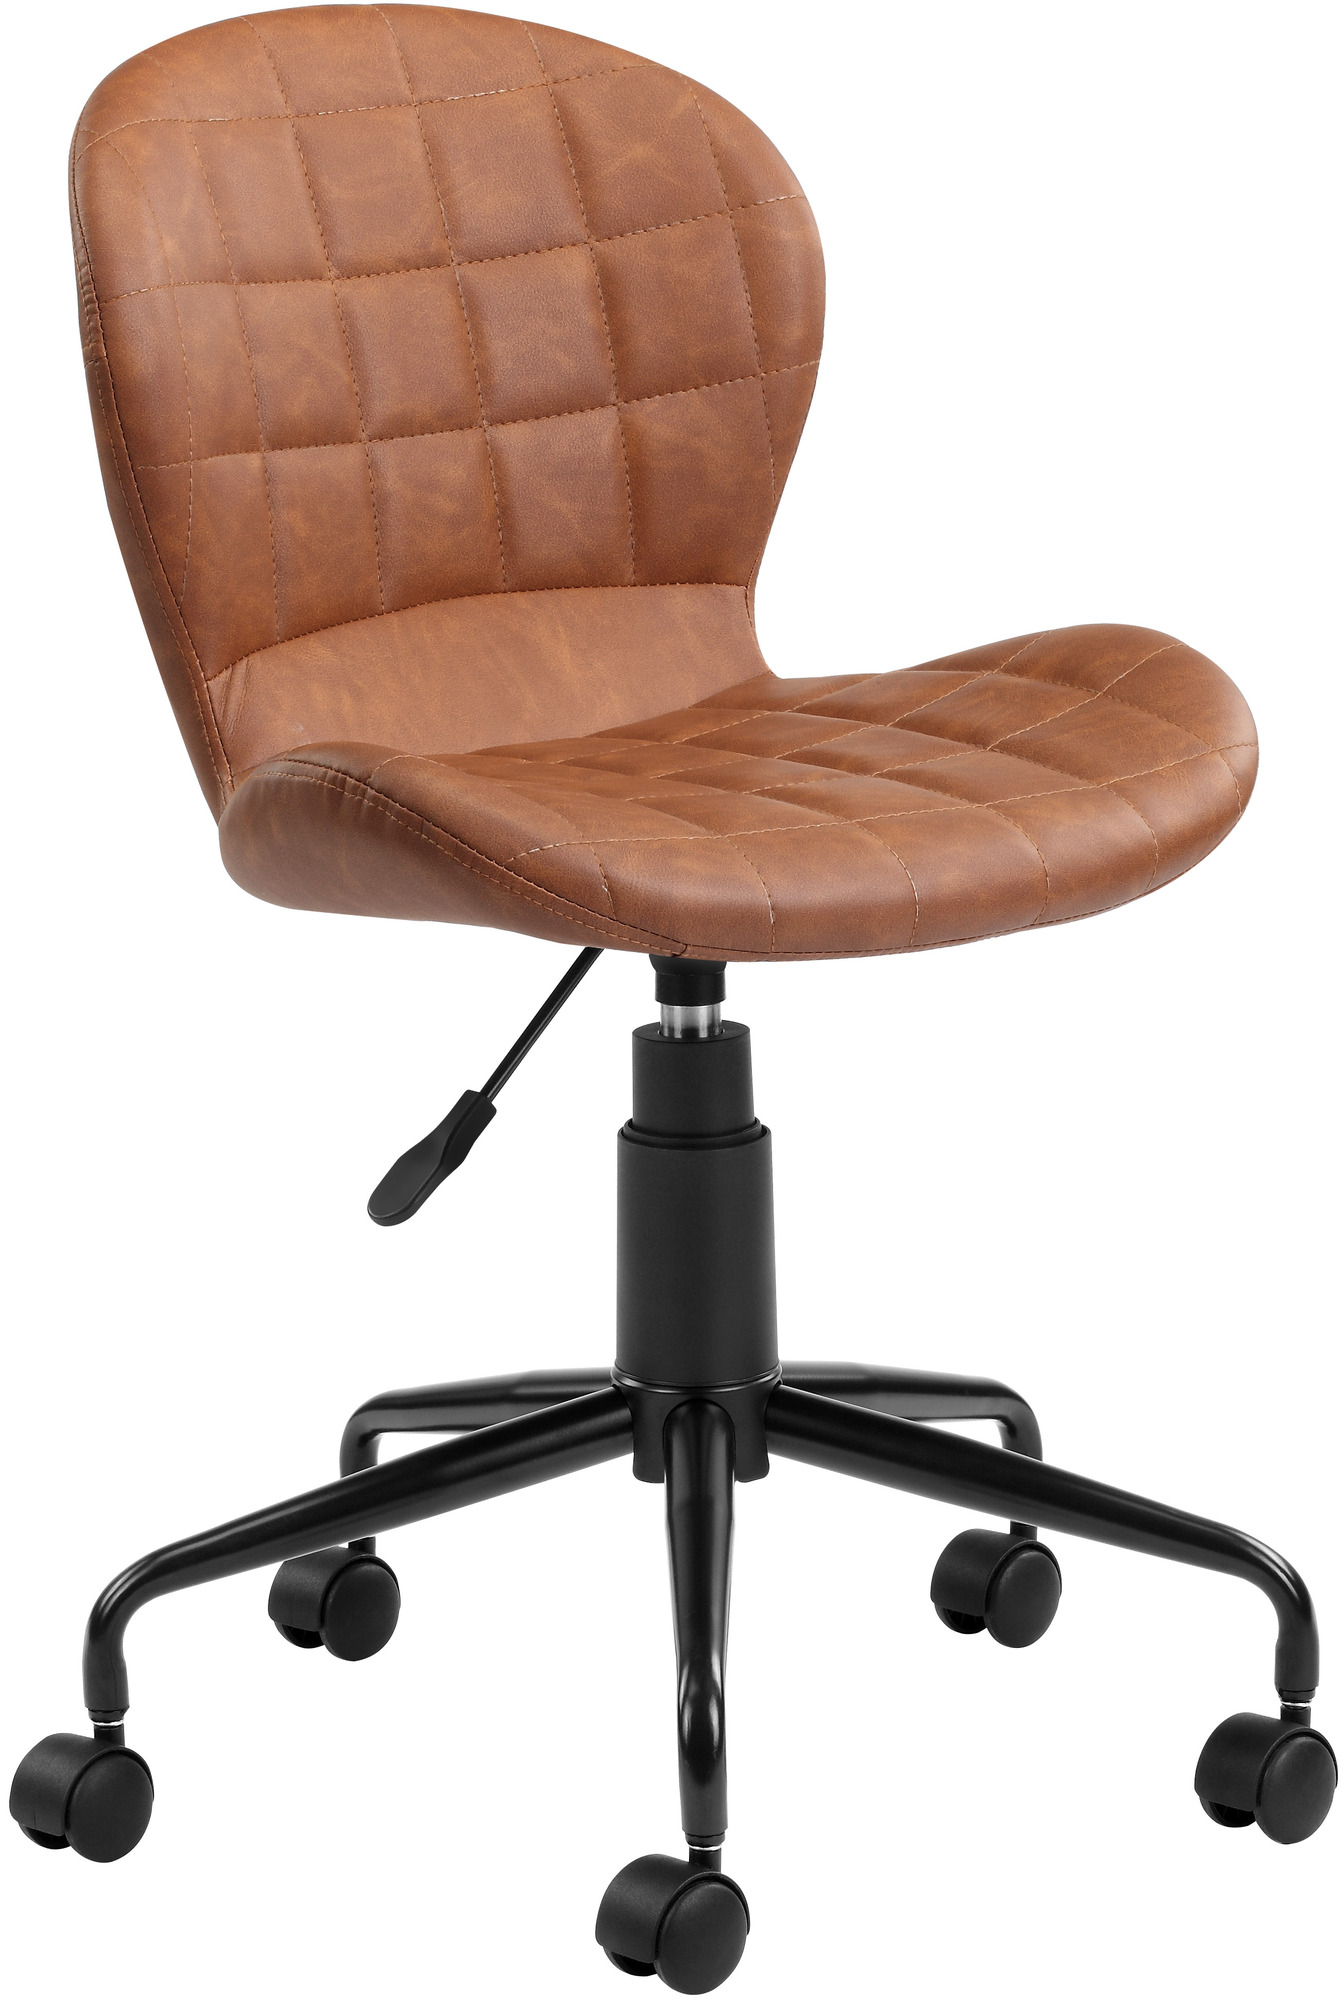 Image of: Milan Direct Brown Aviator Faux Leather Home Office Chair Reviews Temple Webster